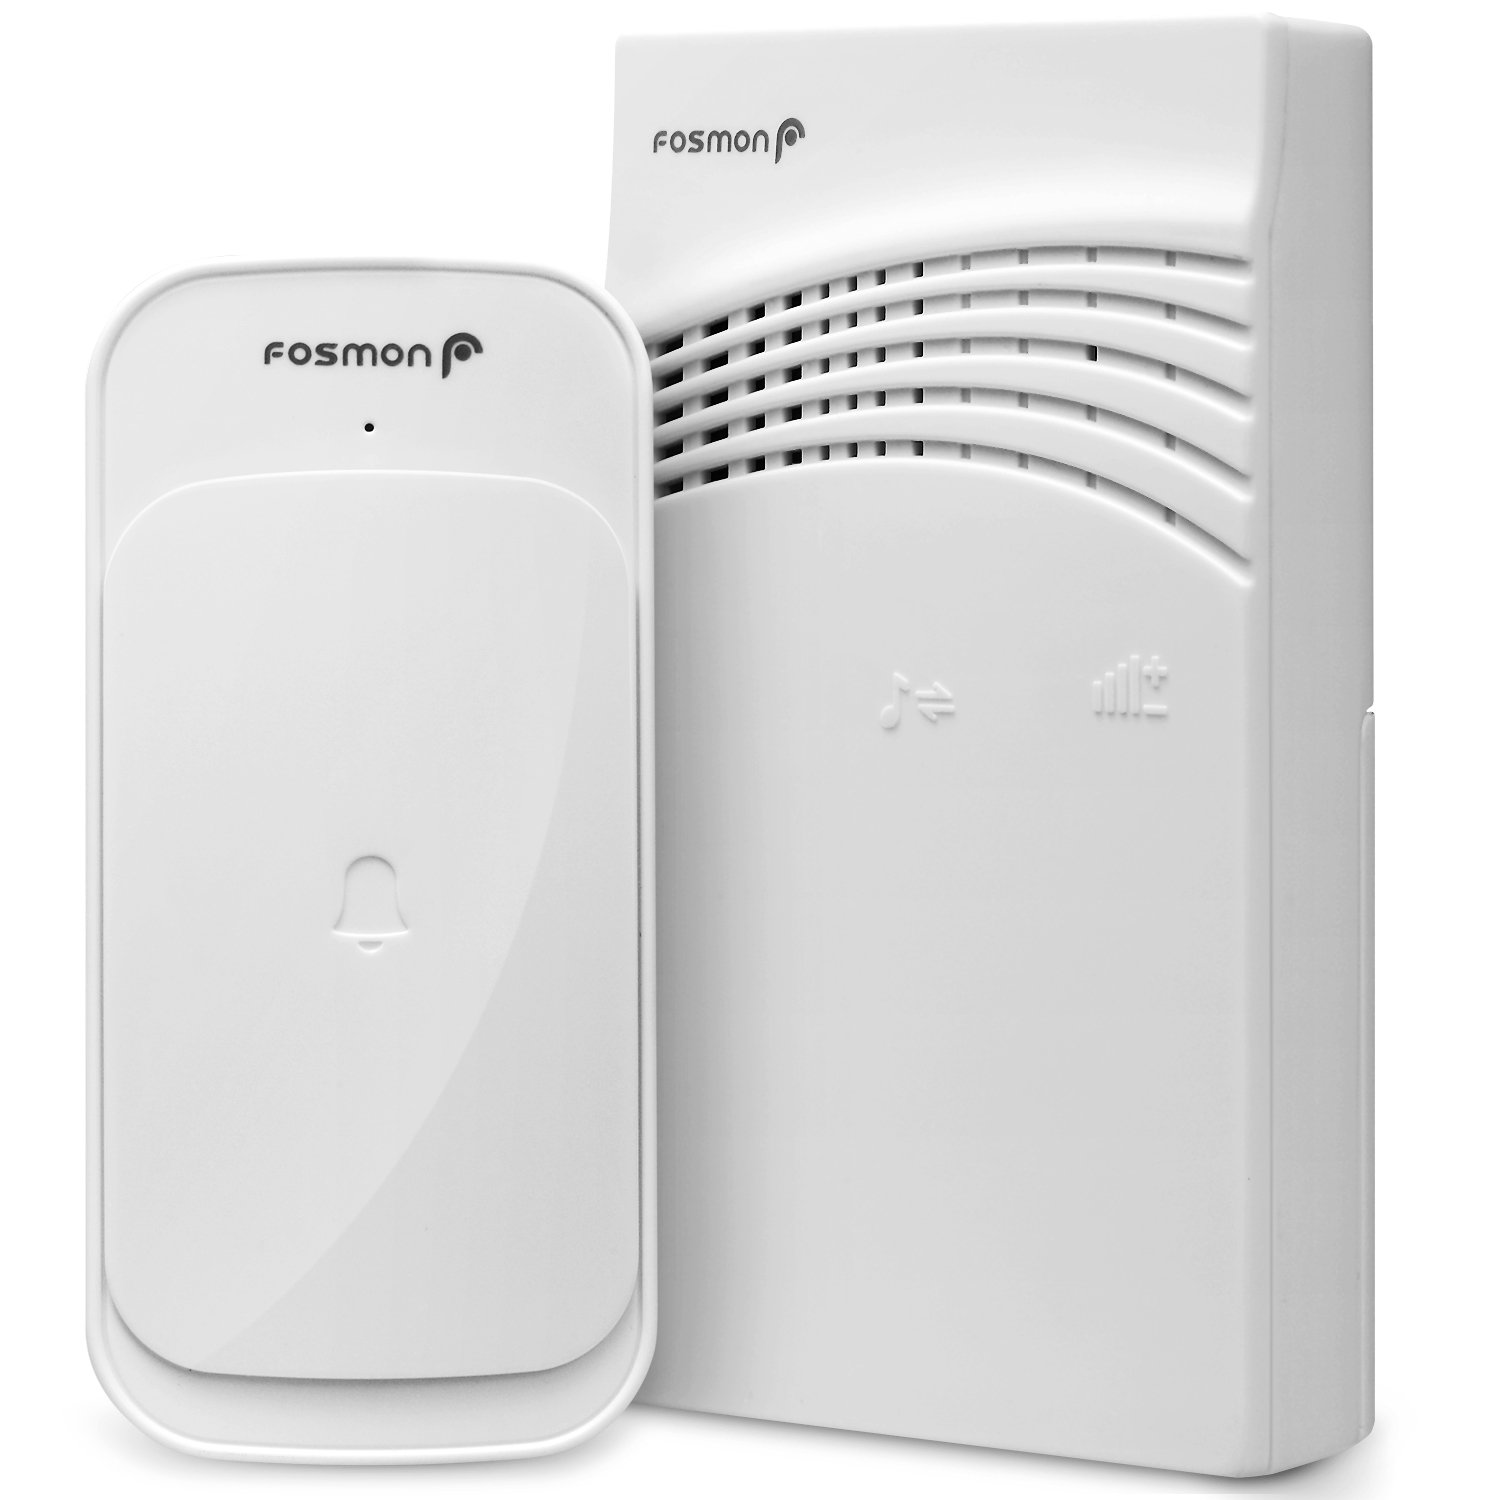 Fosmon Wireless Doorbell Chime Battery Operated [918 Feet 58 Ringtones 95dB] Portable Doorbell Alert Paging Device, 1 Receiver 1 Transmitter, Weather Resistant Doorbell Home, Office, Business